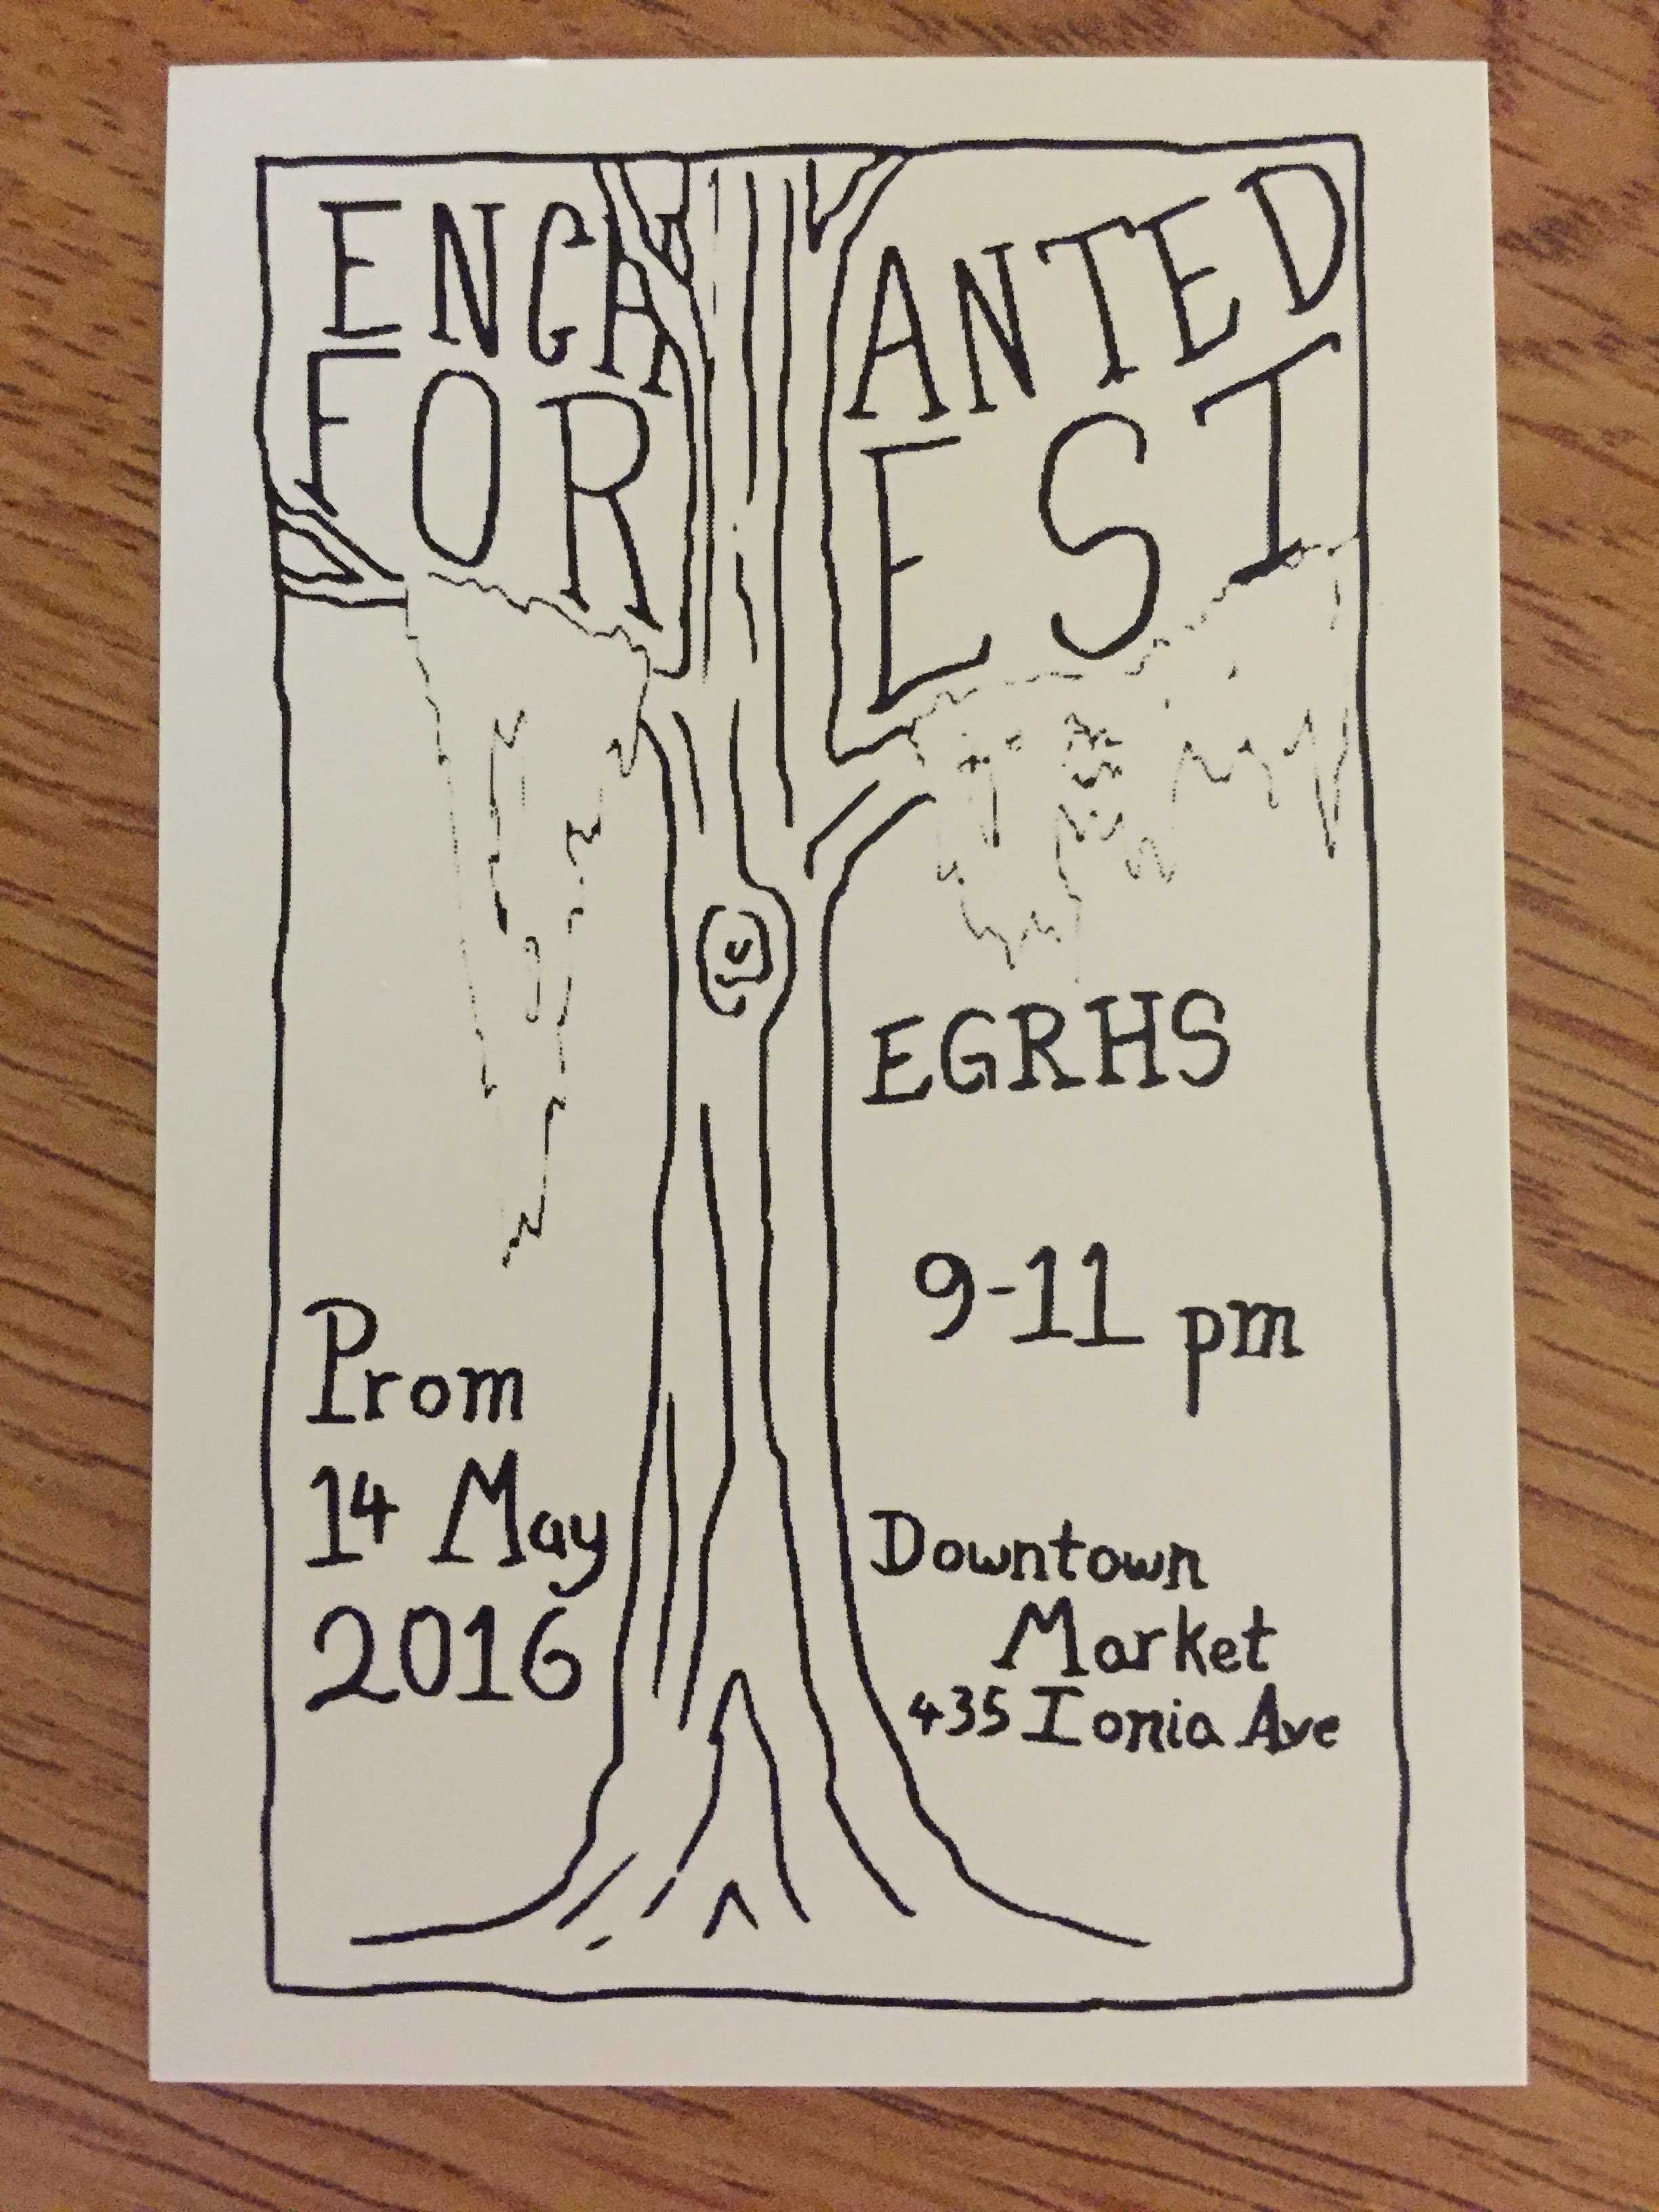 Prom tickets will be sold May 13 during 4th and 5th hour lunch for $20.